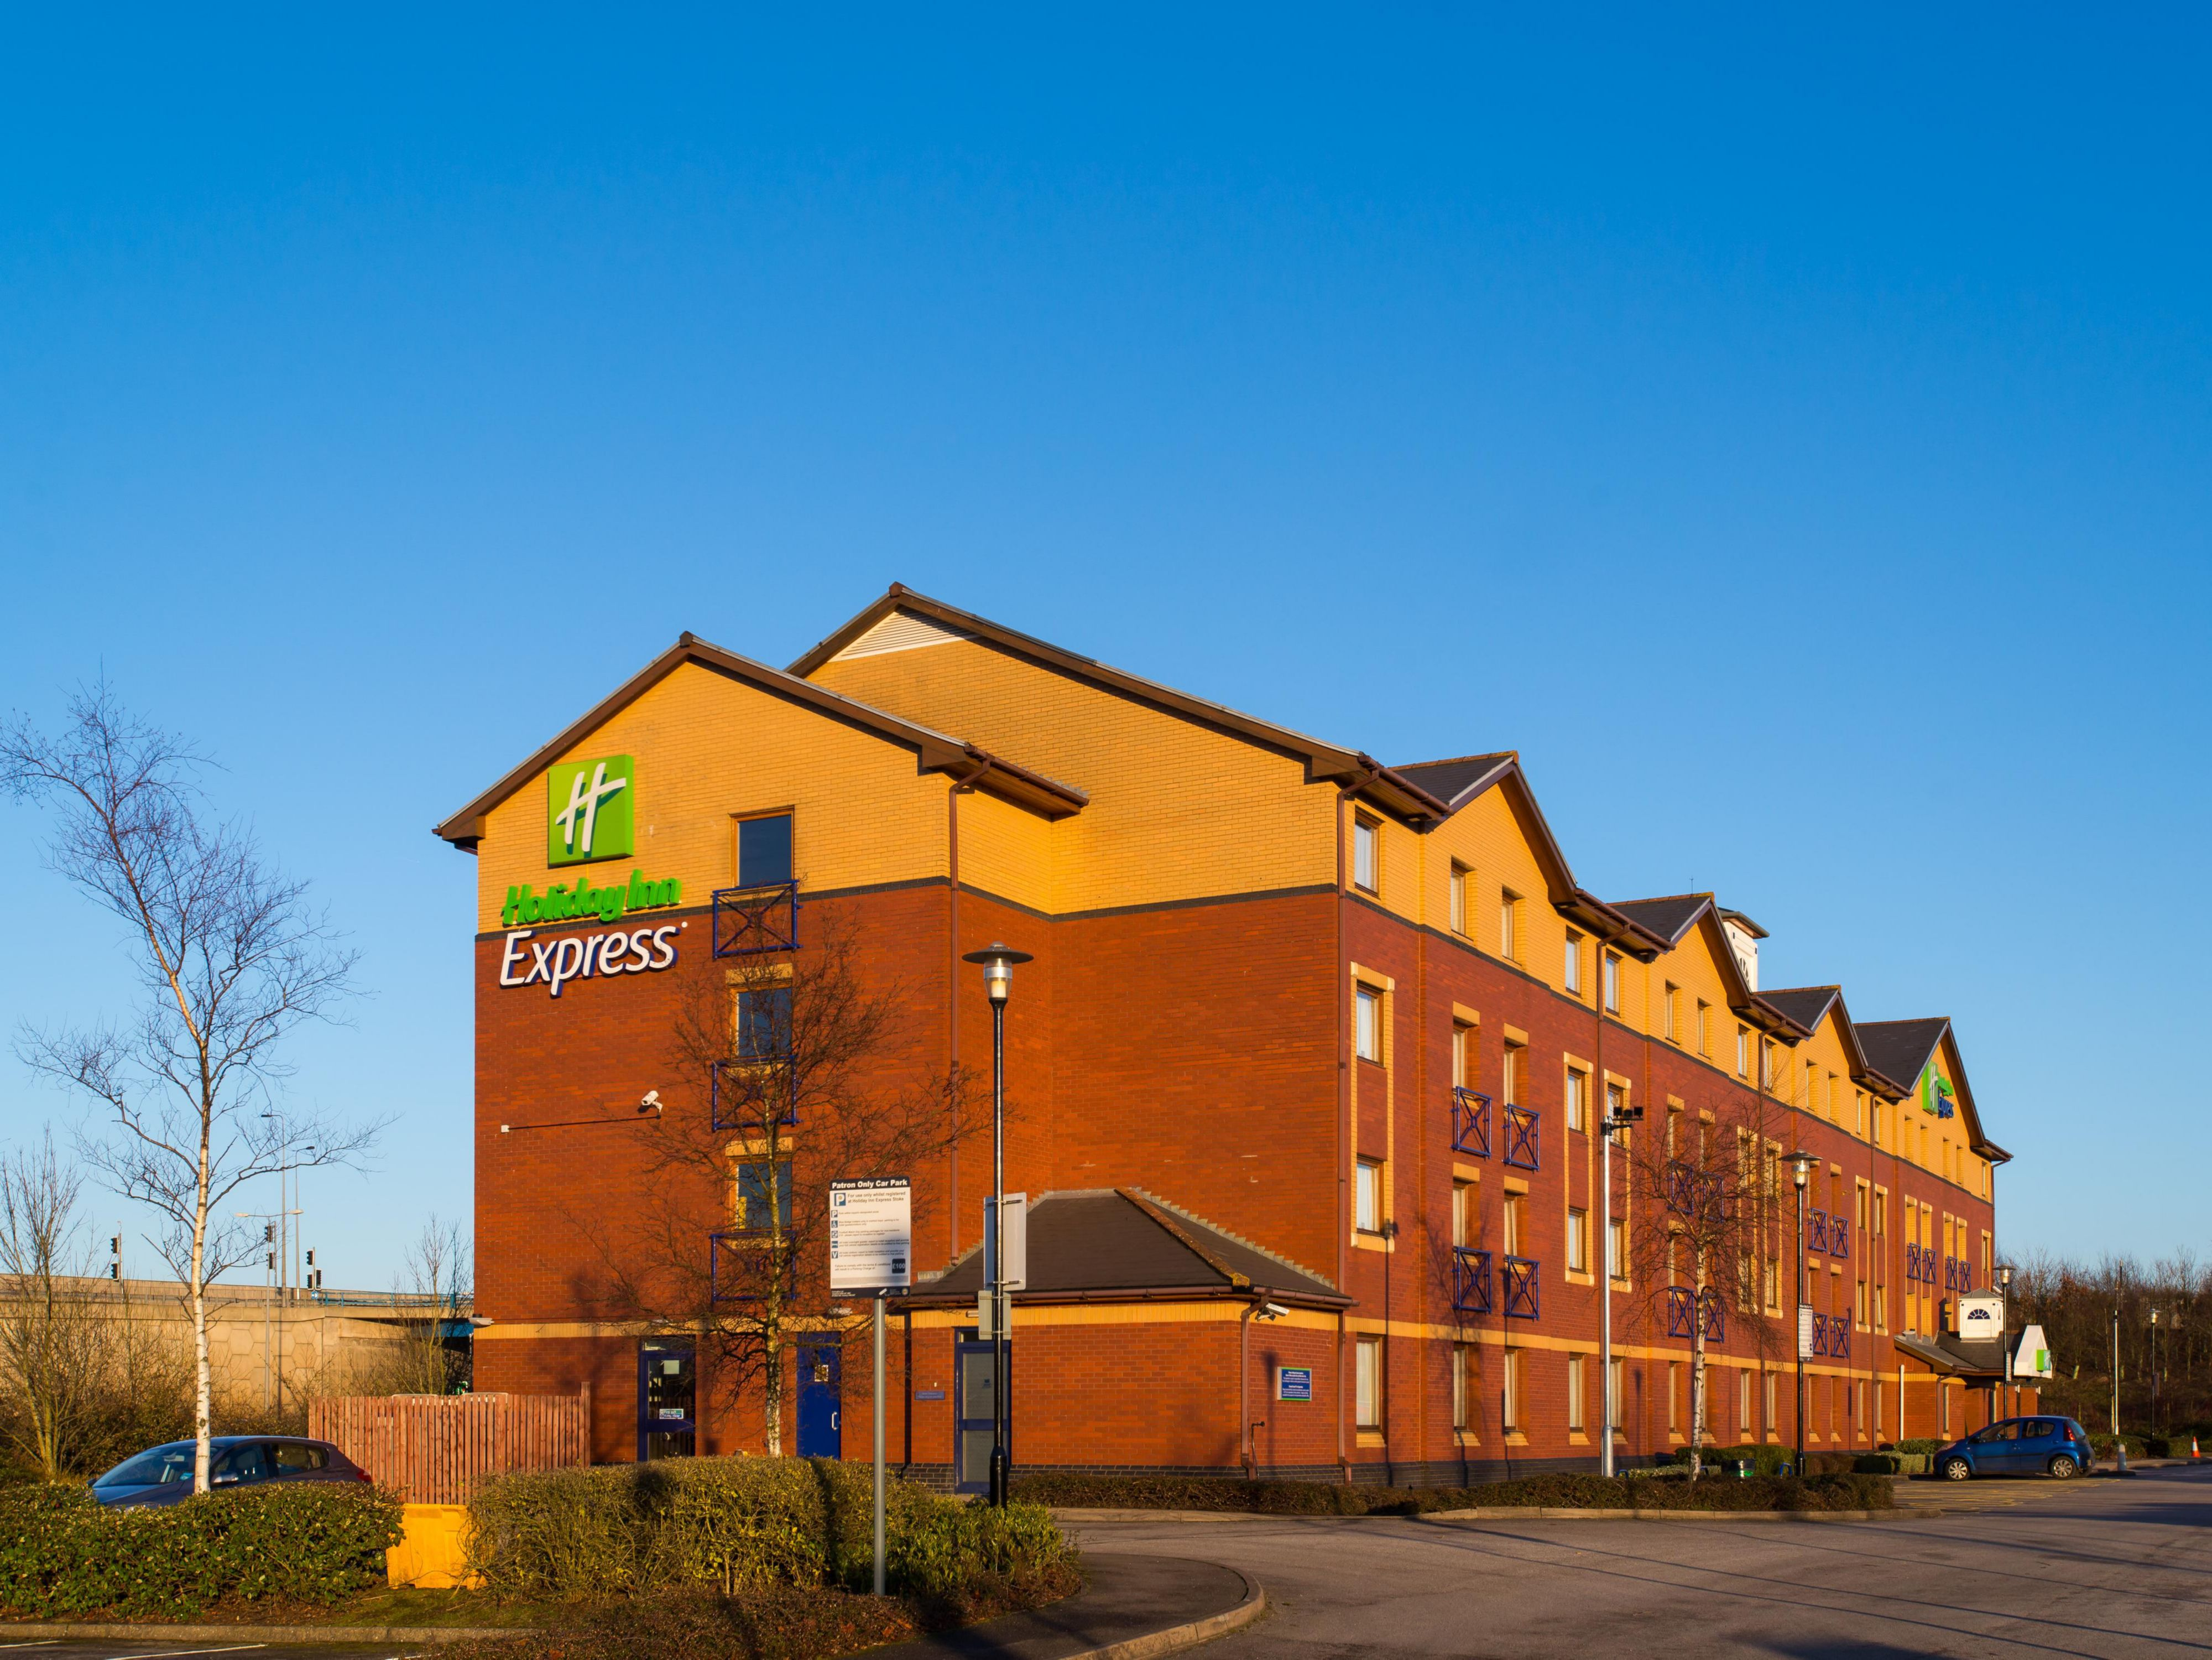 Our hotel in Stoke on Trent is perfect for visiting Alton Towers